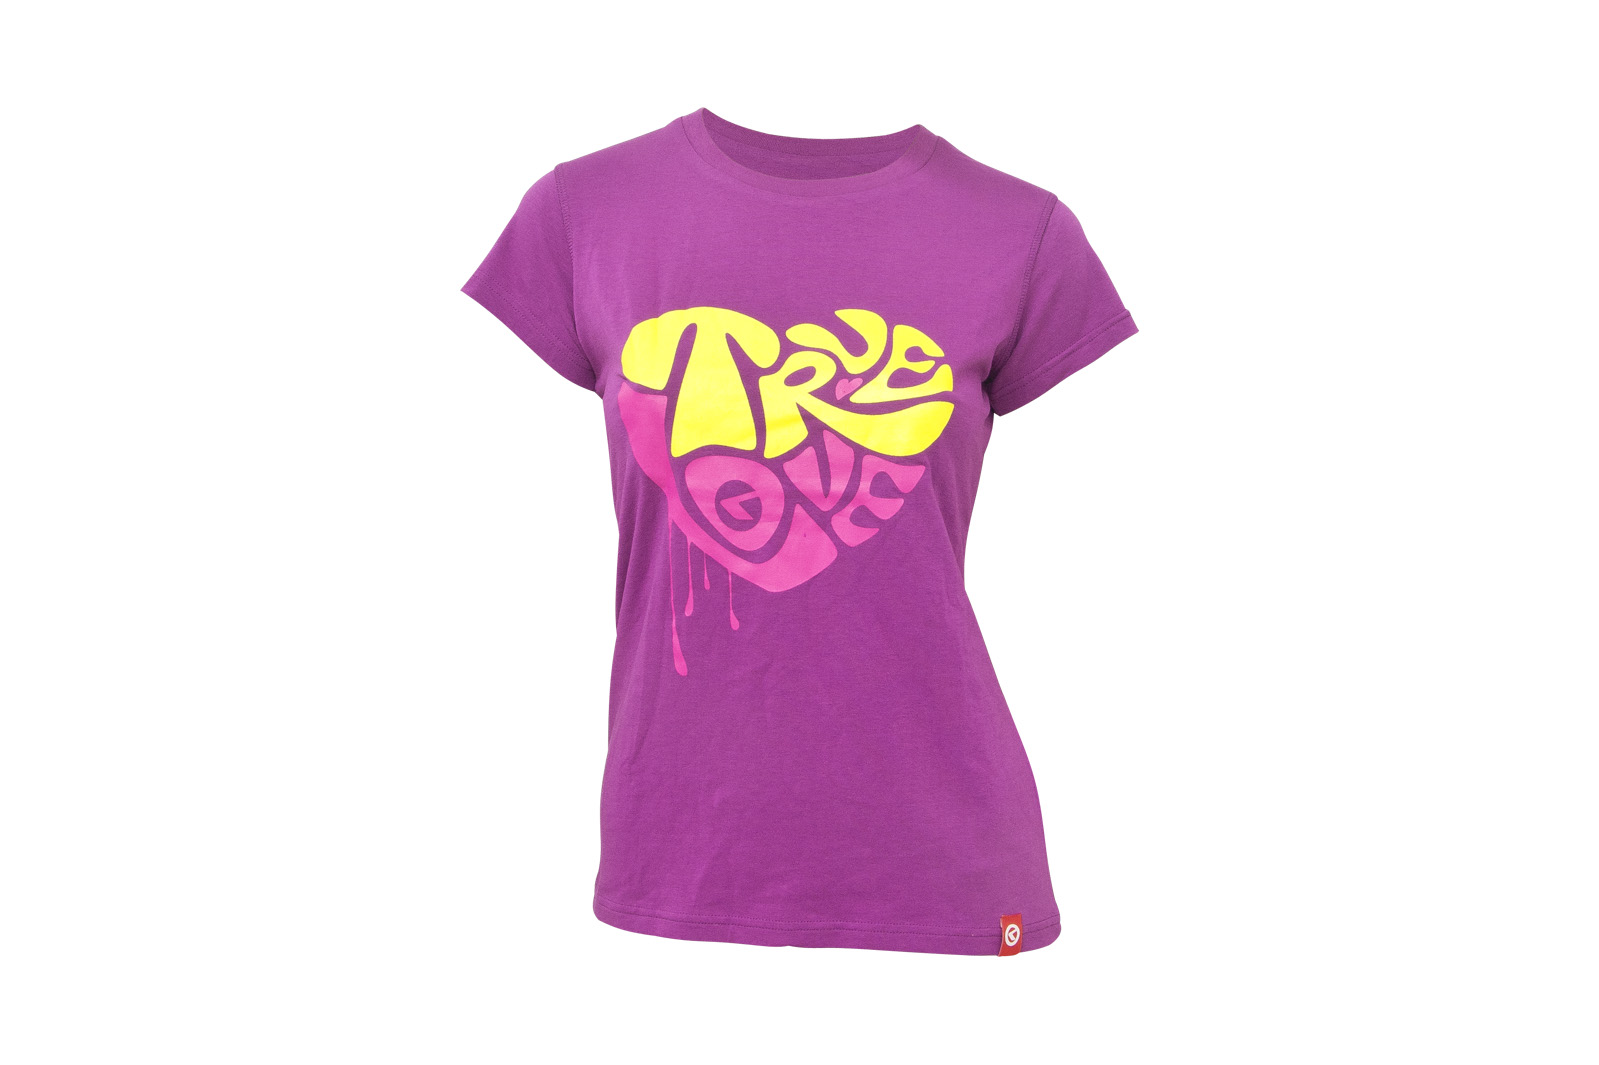 T-Shirt KELLYS WOMEN´S TRUE LOVE kurzarm Purple - L - Fahrradhaus Haske